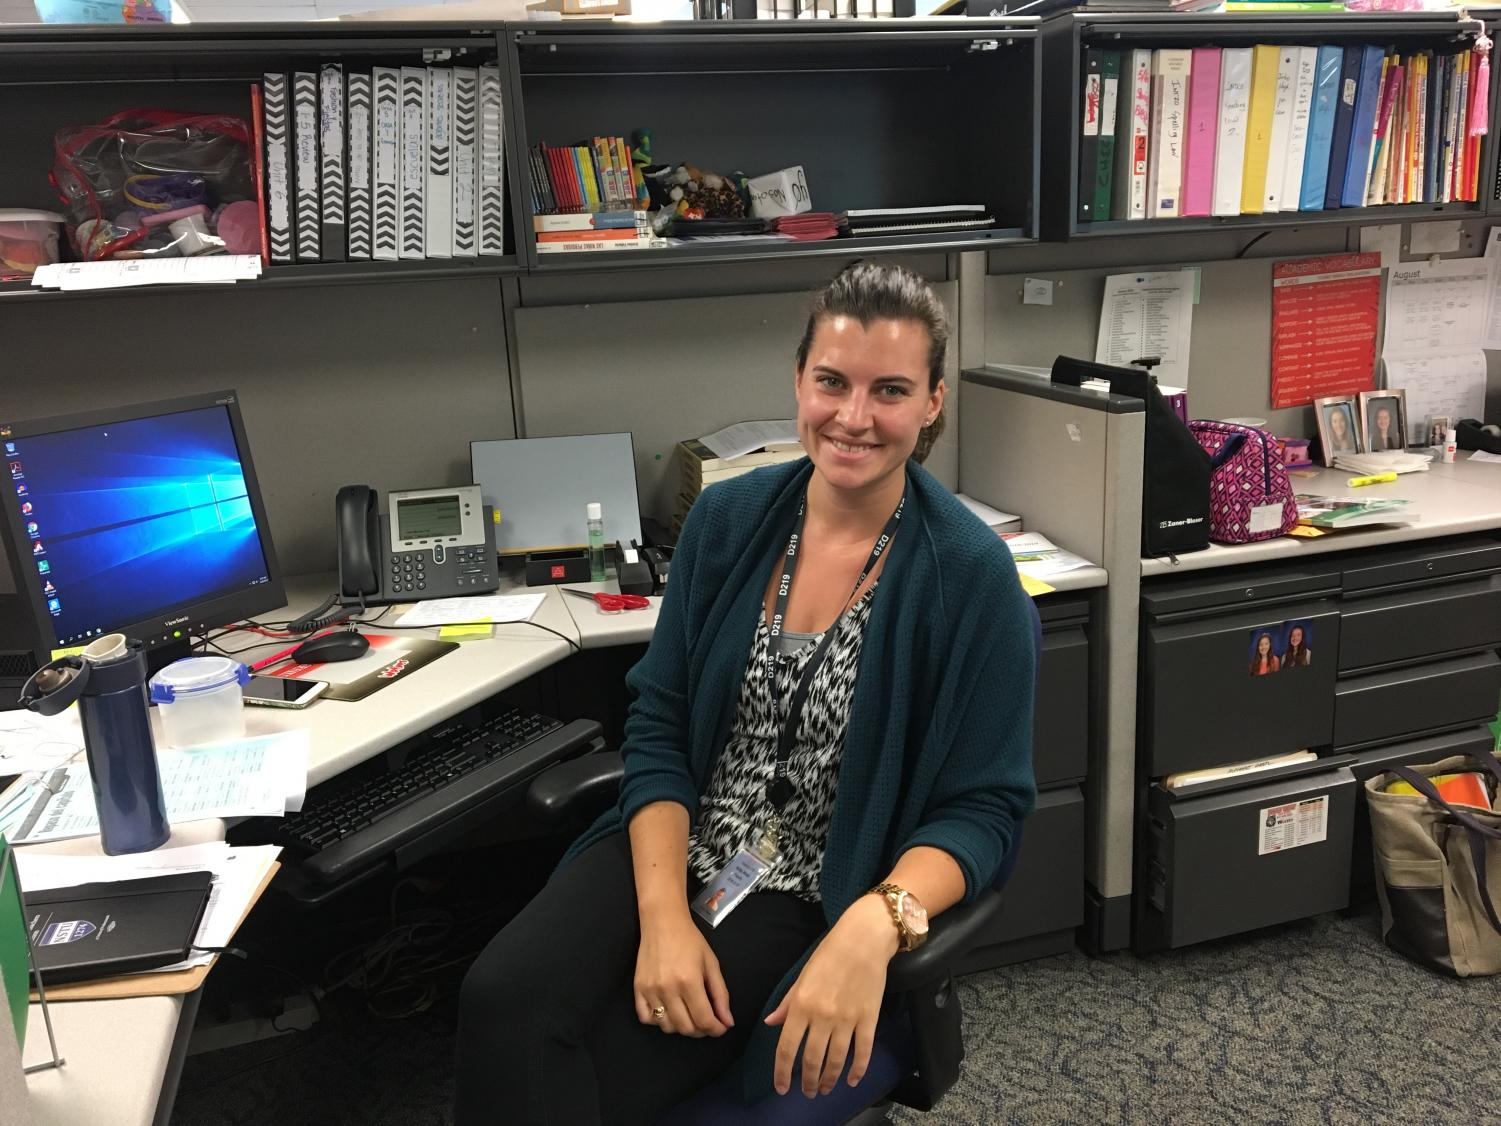 Spanish teacher Emma Baehr is excited for her first year at Niles West.